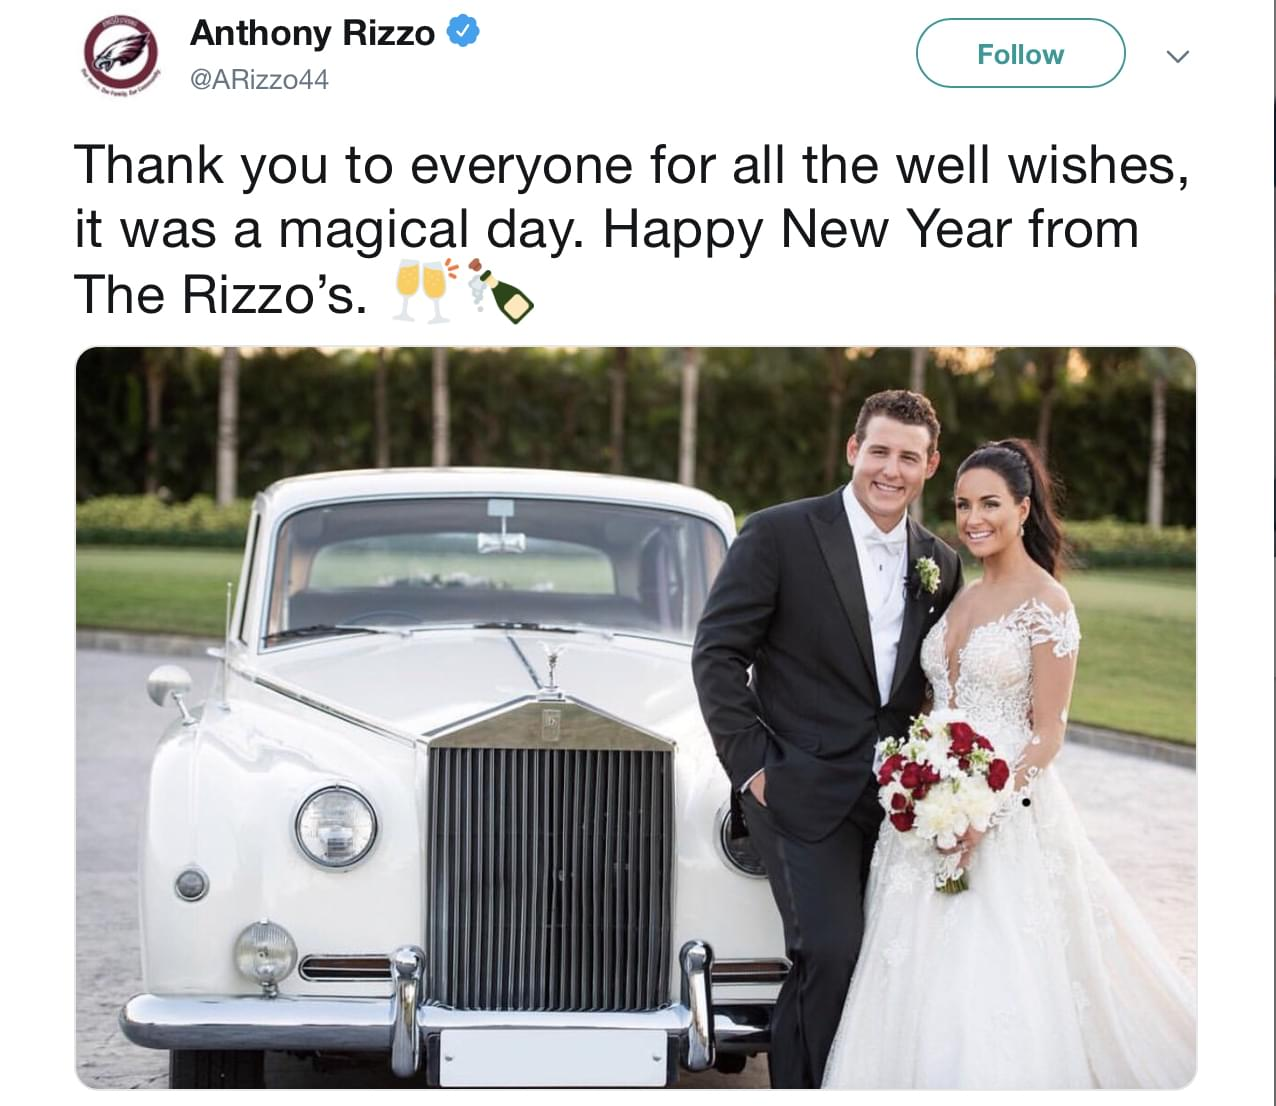 Congratulations to the new Mr. and Mrs. Anthony Rizzo